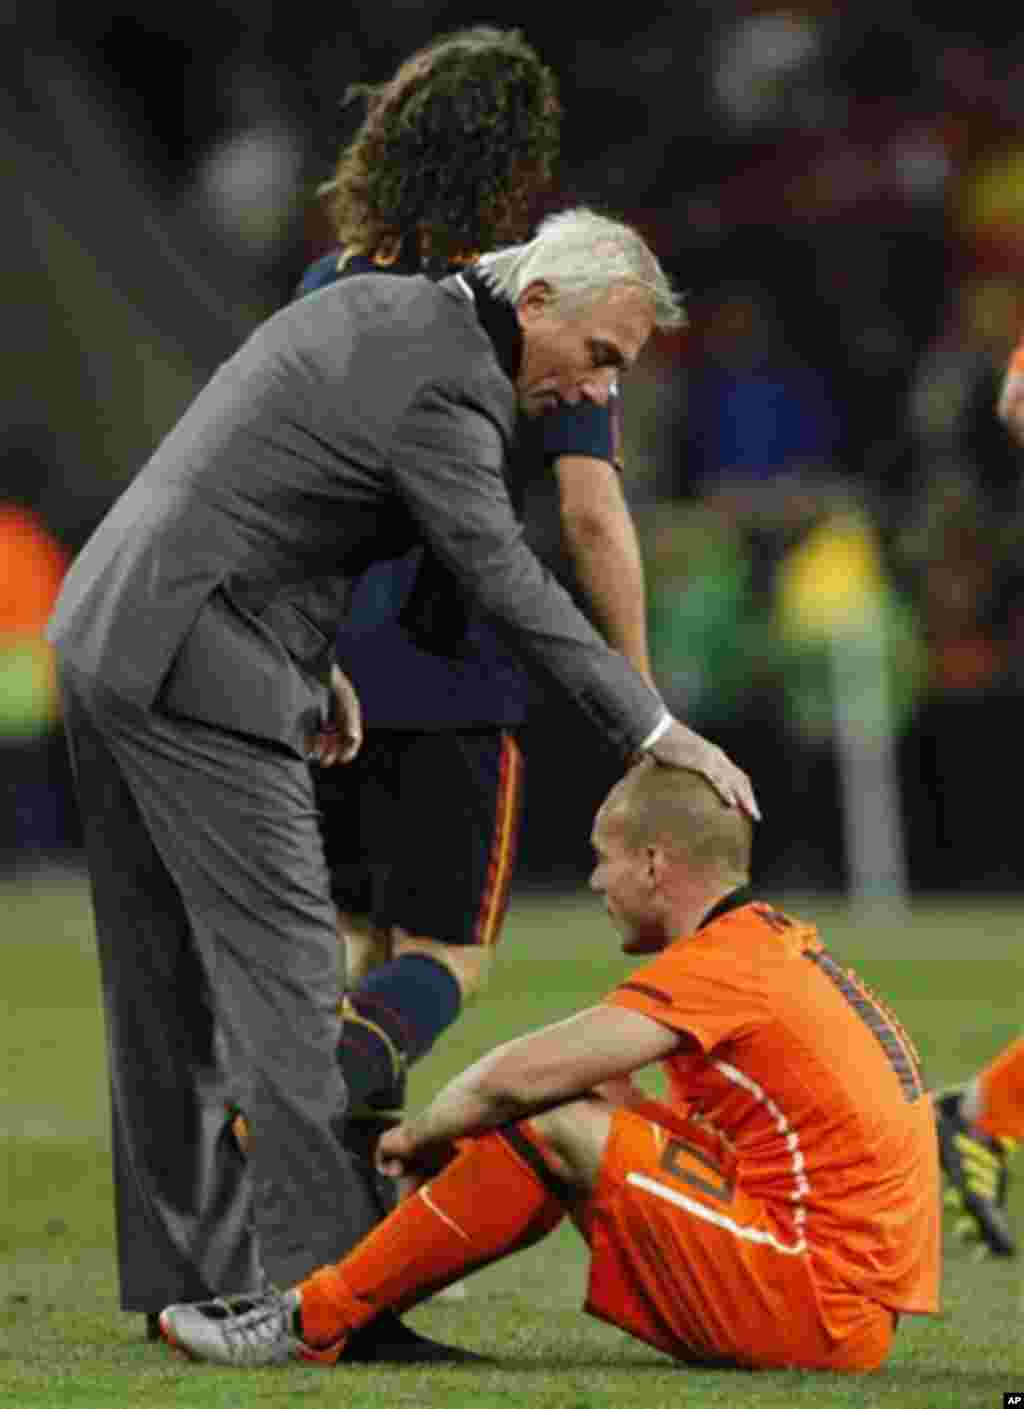 Netherlands head coach Bert van Marwijk, left, comforts Netherlands' Wesley Sneijder, right, following the World Cup final soccer match between the Netherlands and Spain at Soccer City in Johannesburg, South Africa, Sunday, July 11, 2010. (AP Photo/Berna